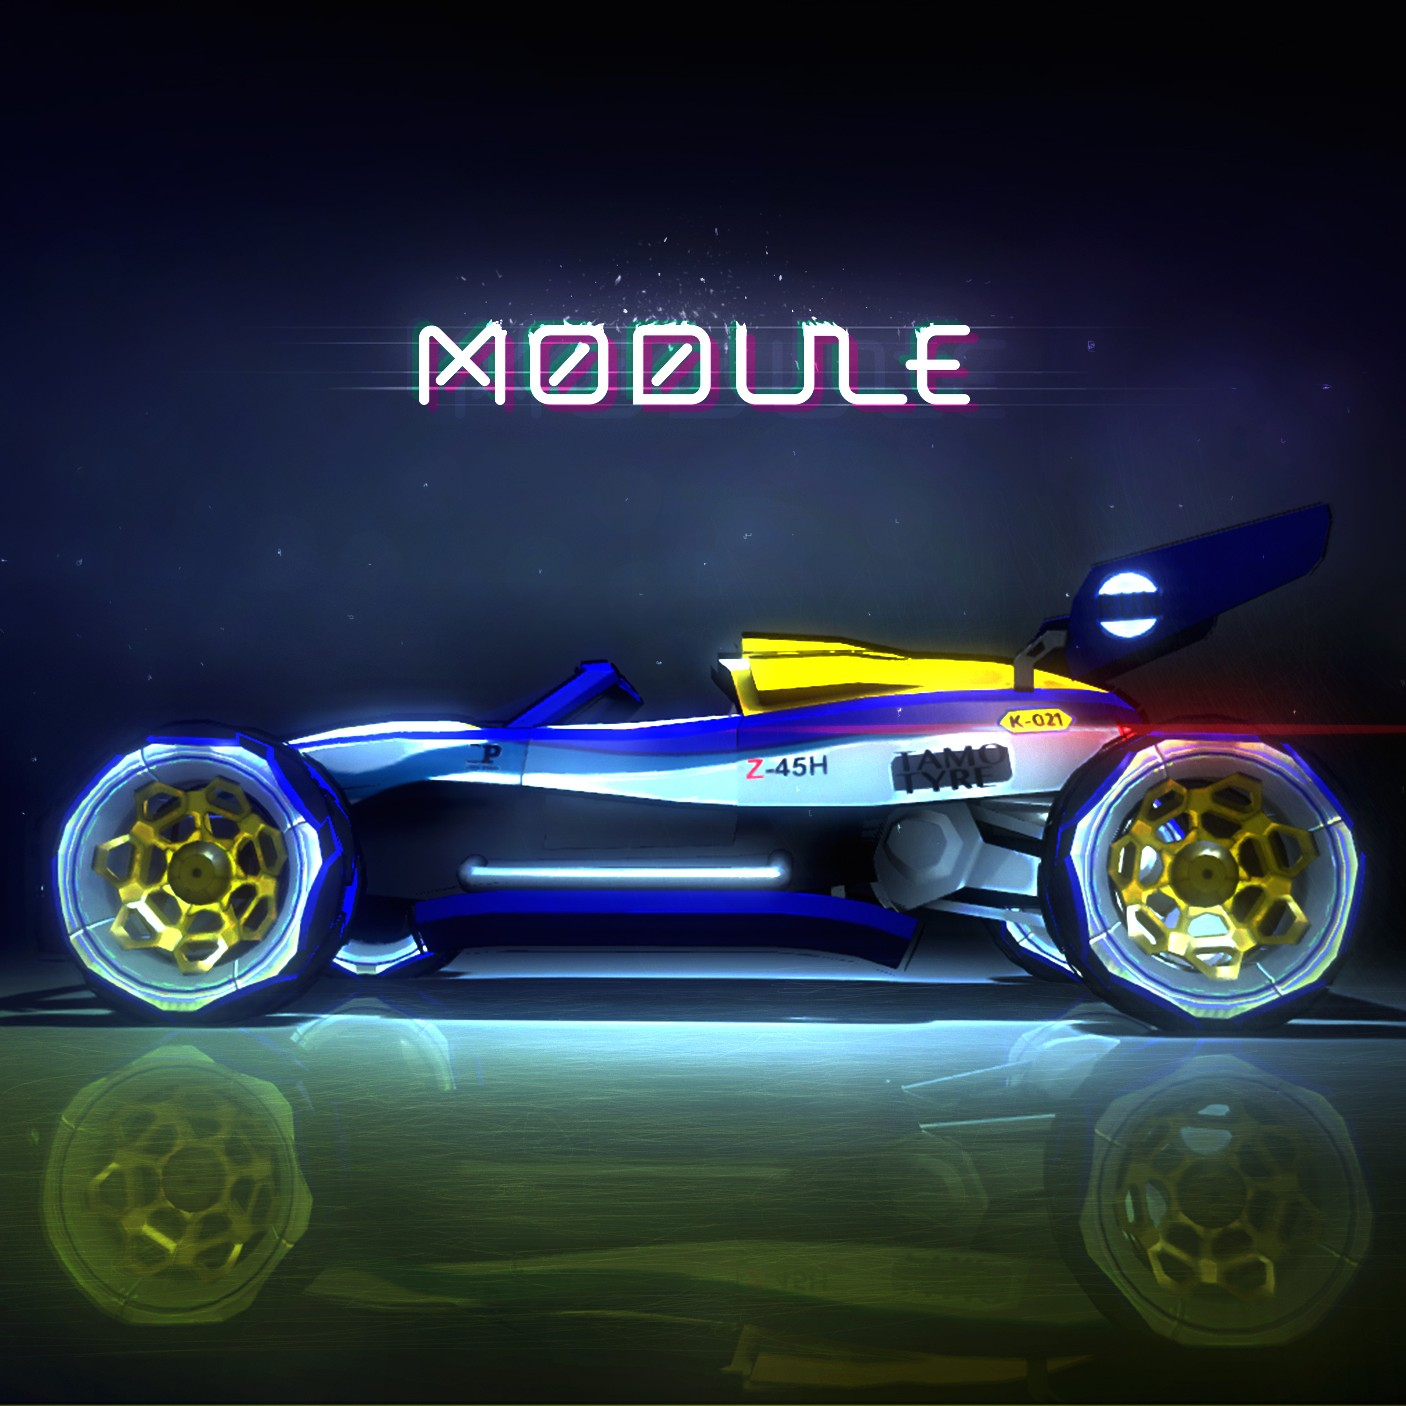 XMODULE Races into the Future of Video Games and 3D Printing